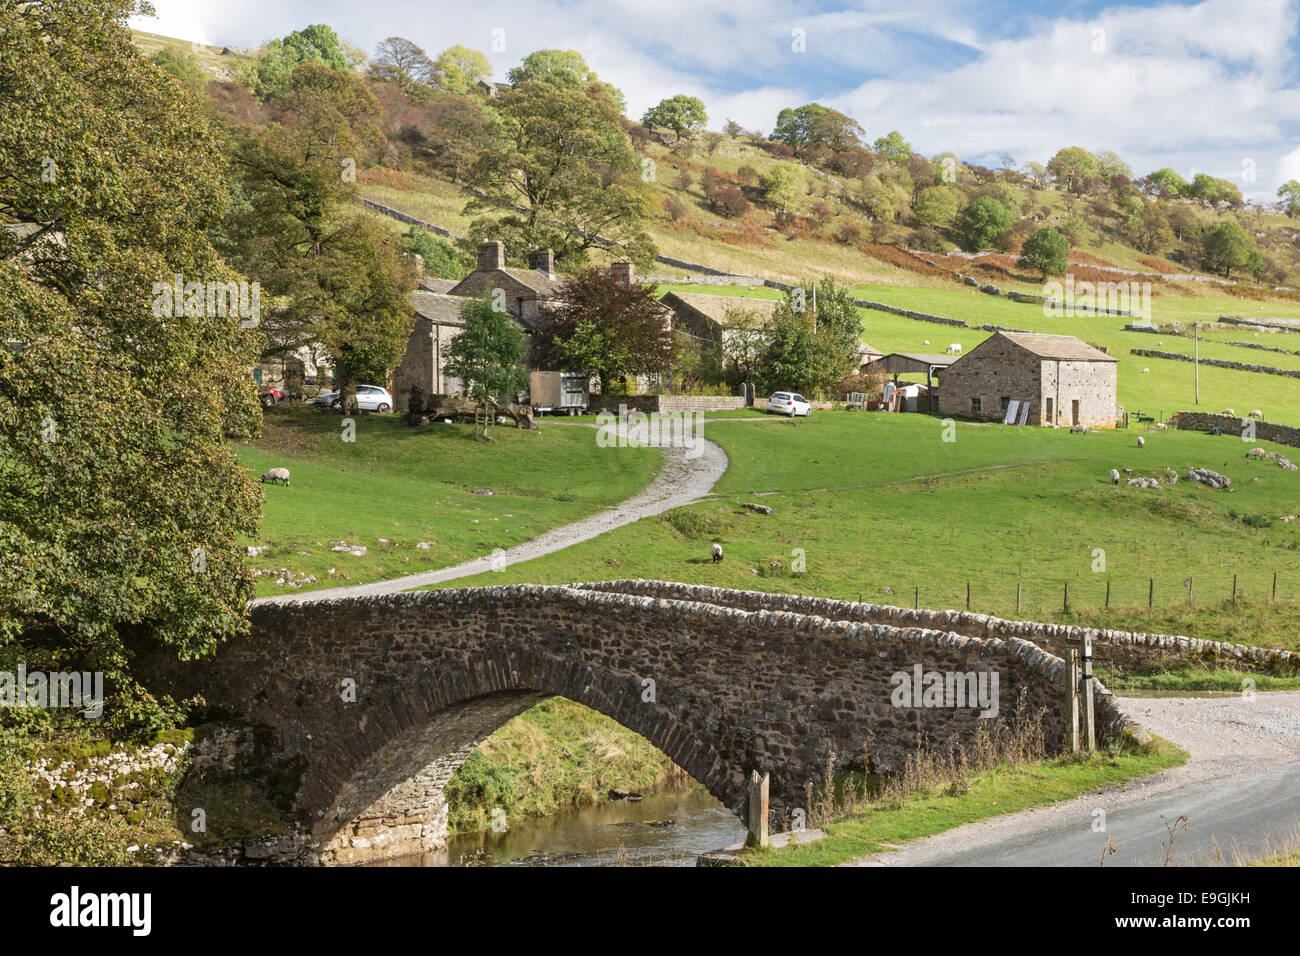 The small hamlet of Yockenthwaite, Wharfdale in the Yorkshire Dales National Park, North Yorkshire, England, UK - Stock Image